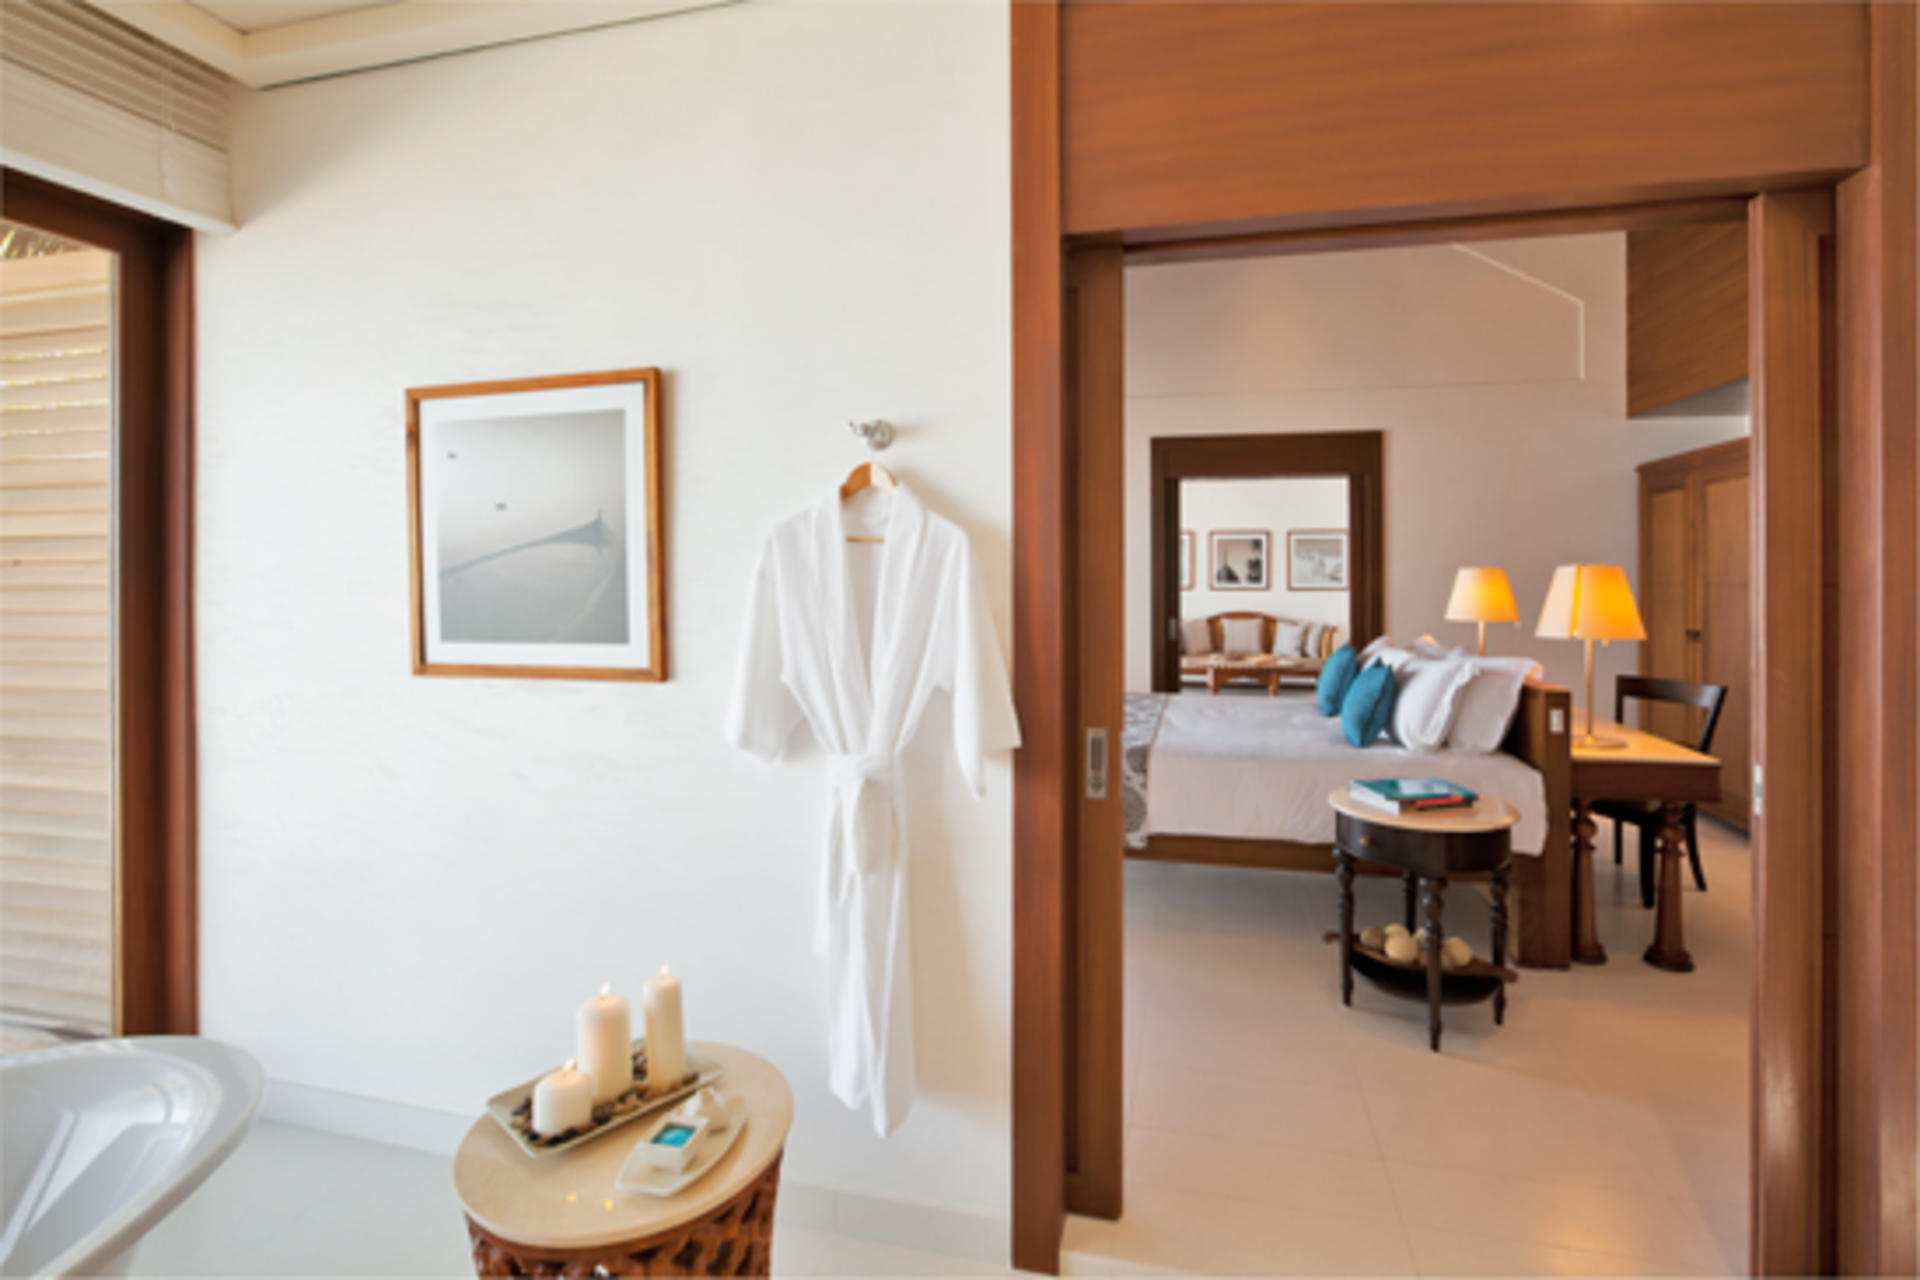 Cenizaro_ResidencesMaldives_One-Bedroom-Beach-Villa-Bathroom-Looking-into-Bedroom